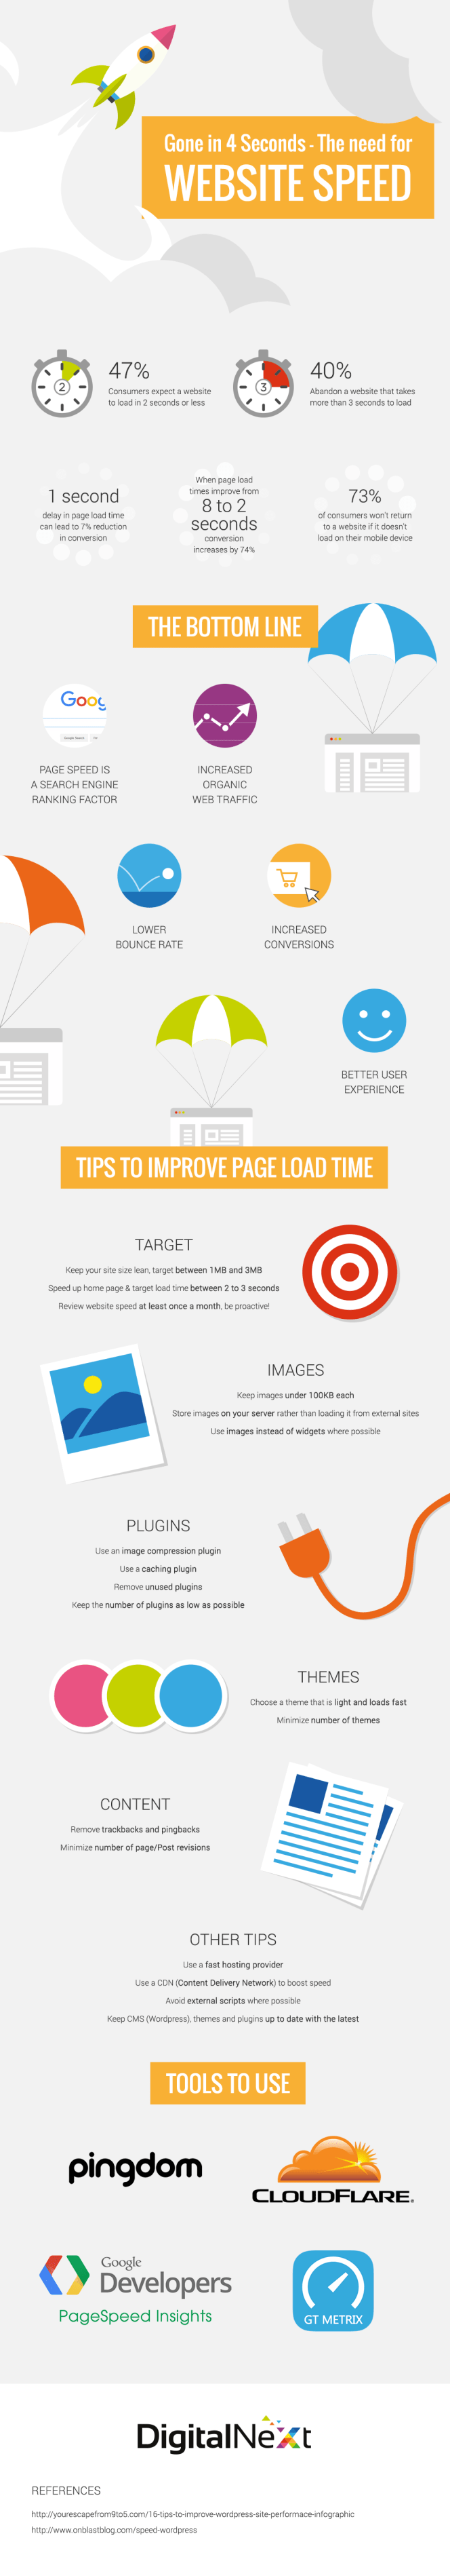 Load-Time-Website-image